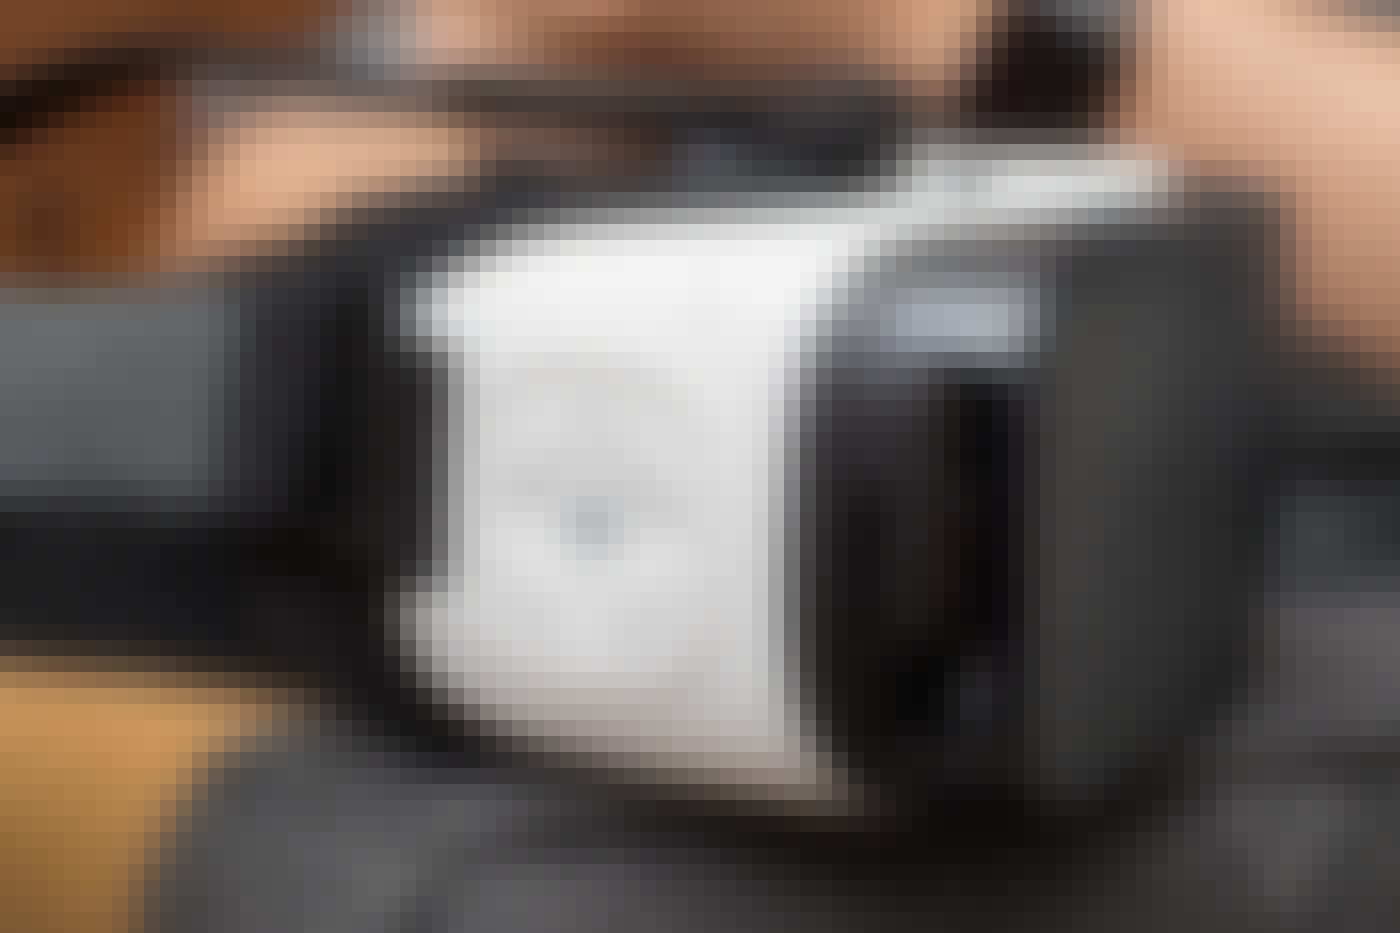 Samsung Gear VR close up.